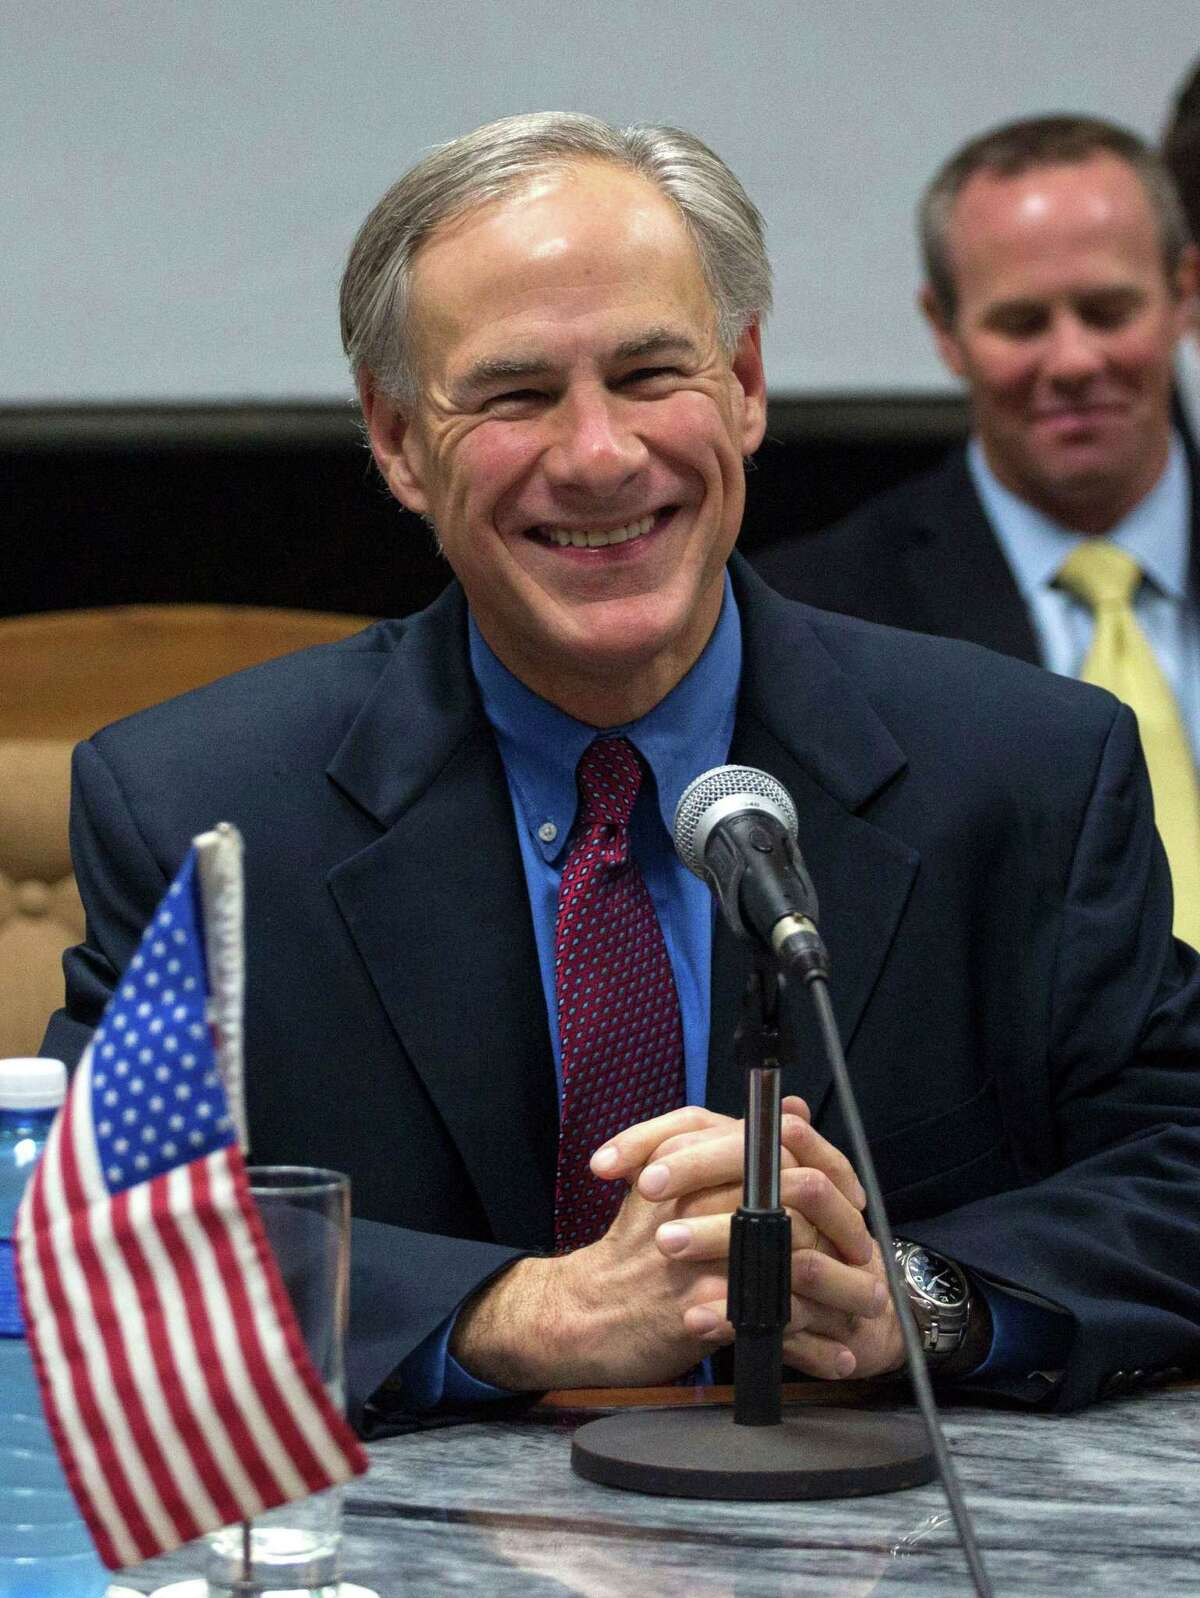 In December, Gov. Greg Abbott met with Cuba's foreign trade minister during a two-day visit to promote Texas agricultural products.